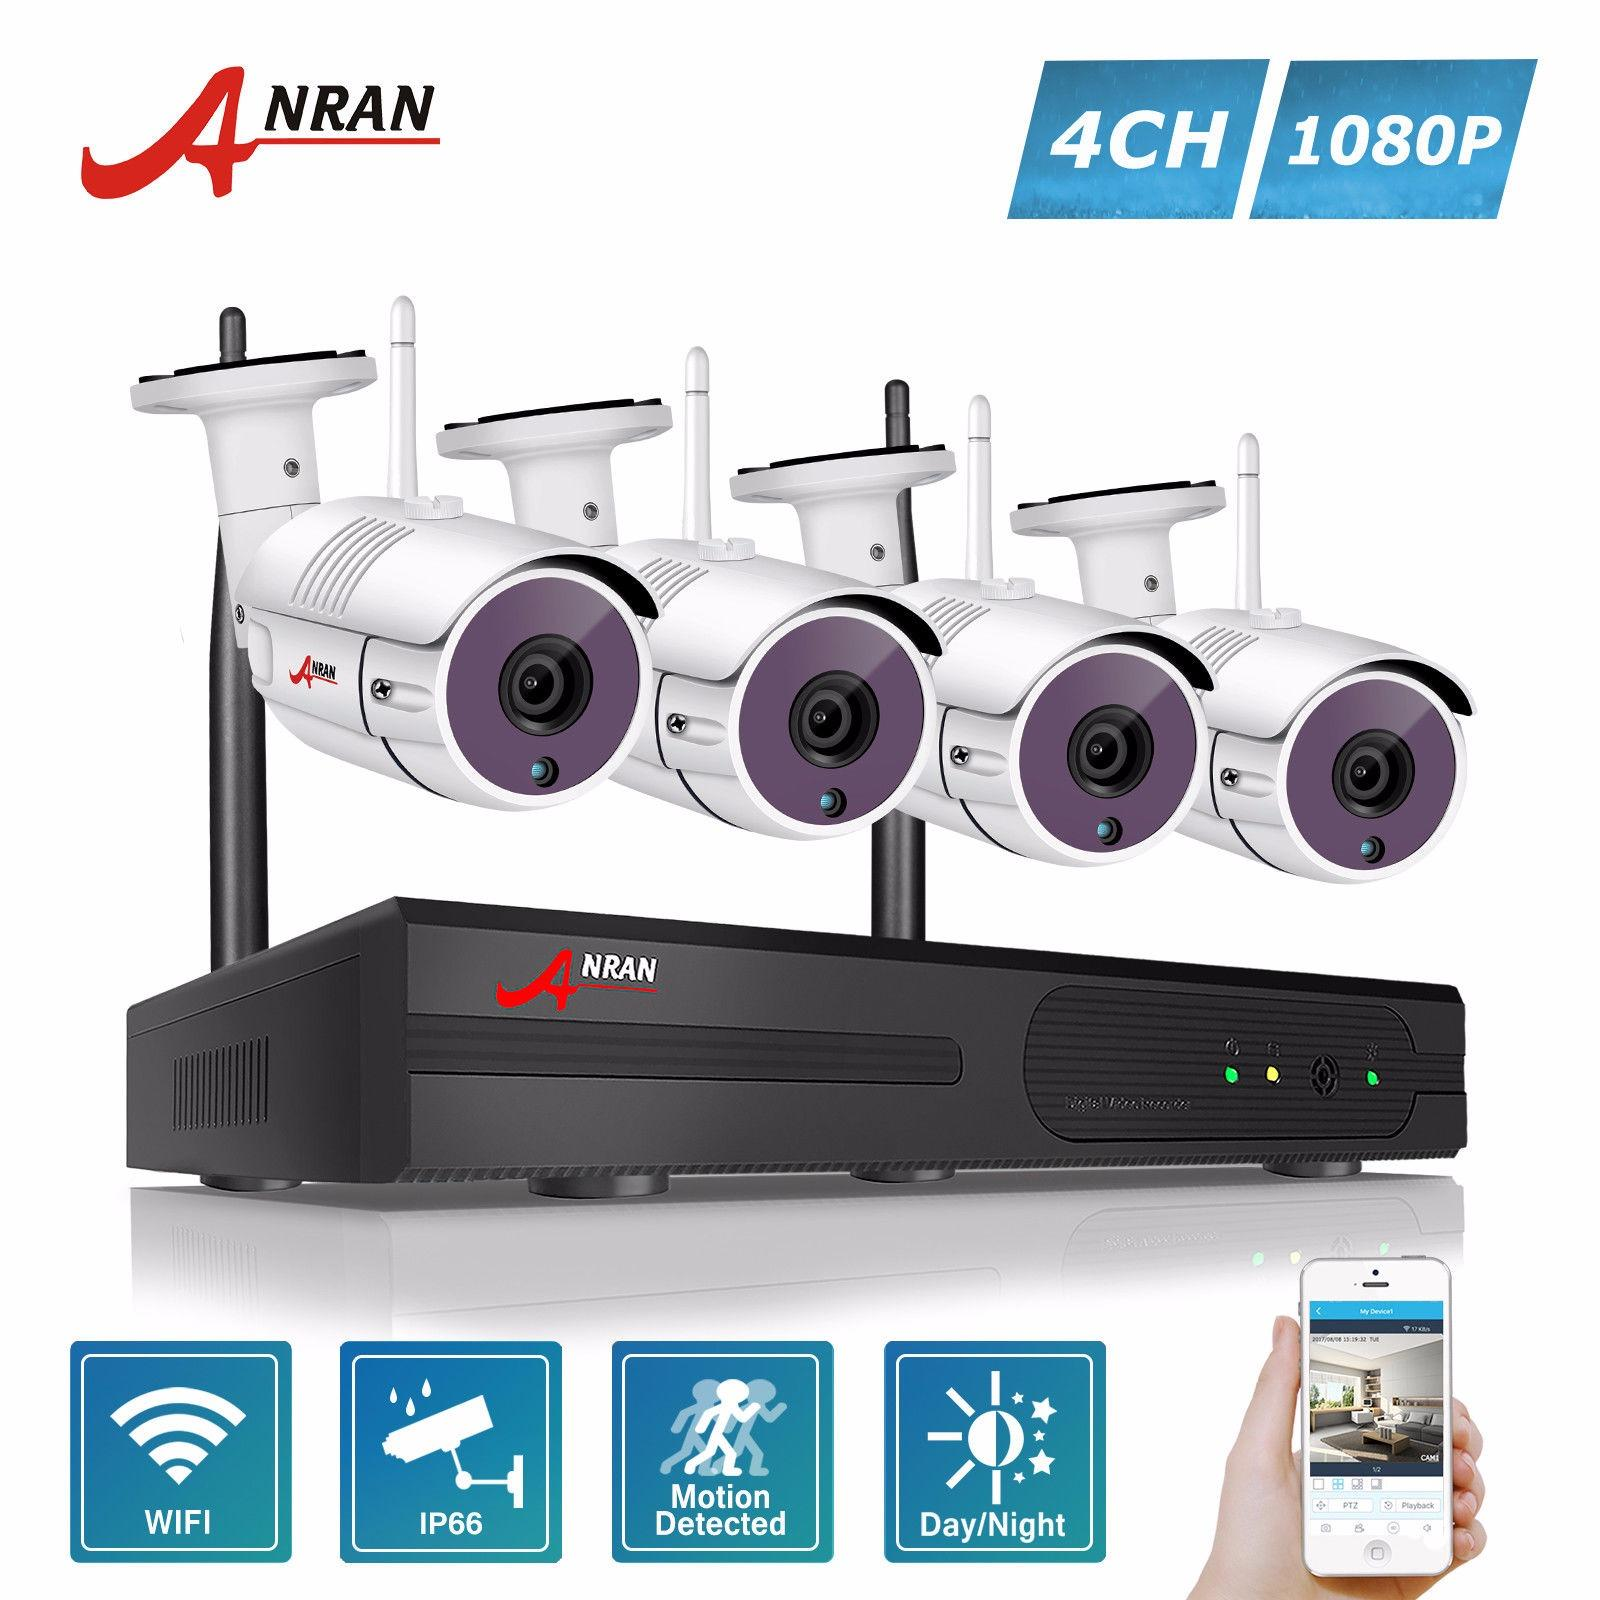 Best Rated Anran 4Ch Wireless Nvr Security Cctv System P2P 1080P Hd Outdoor Vandalproof Wfi Ip Camera